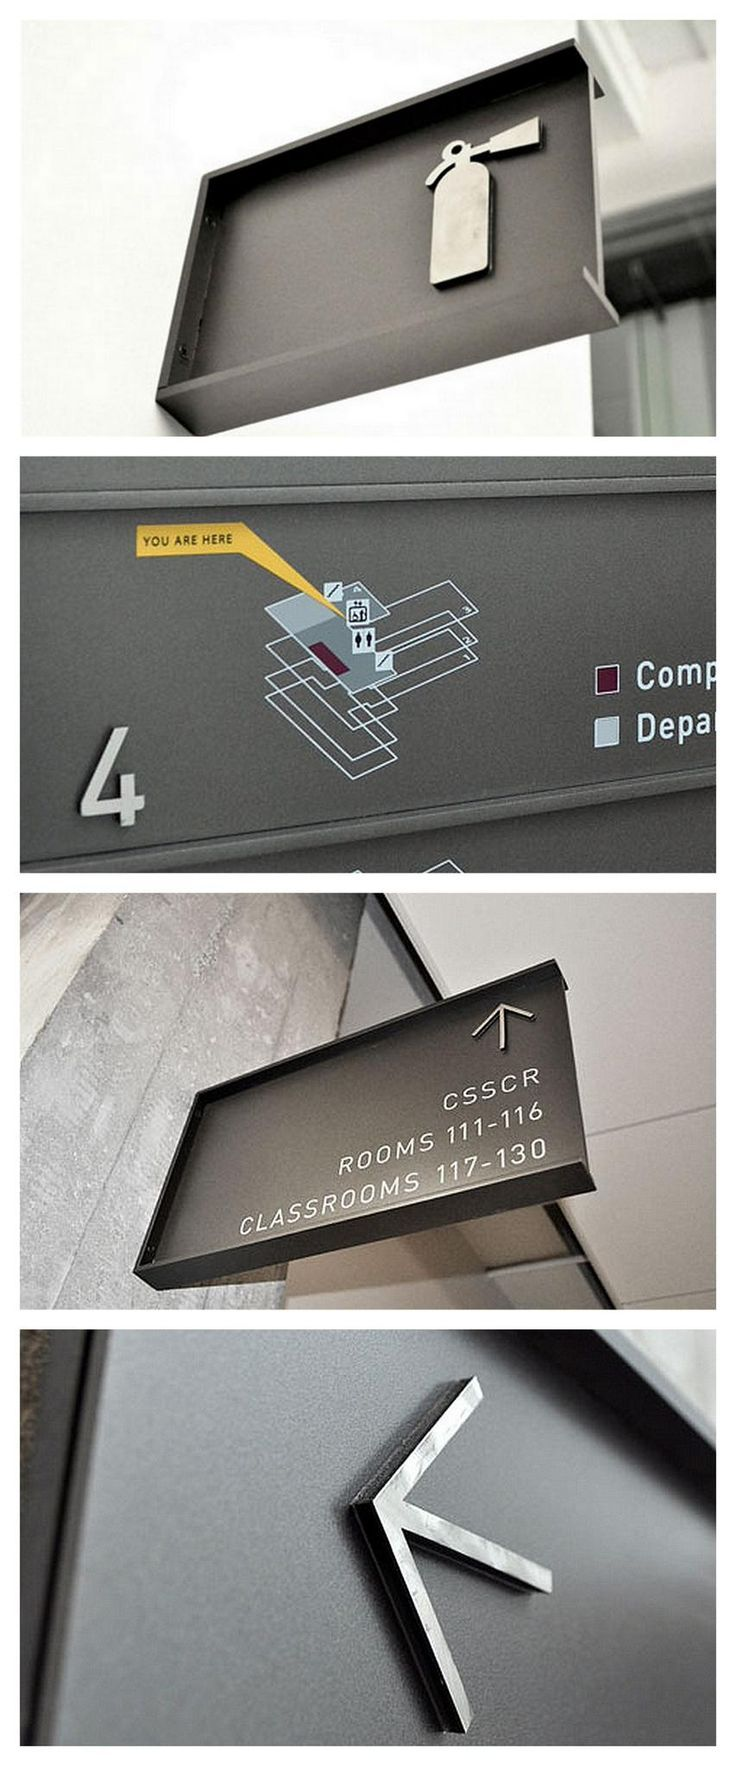 Beautiful design and build in this signage by Signitecture #signage and #wayfinding